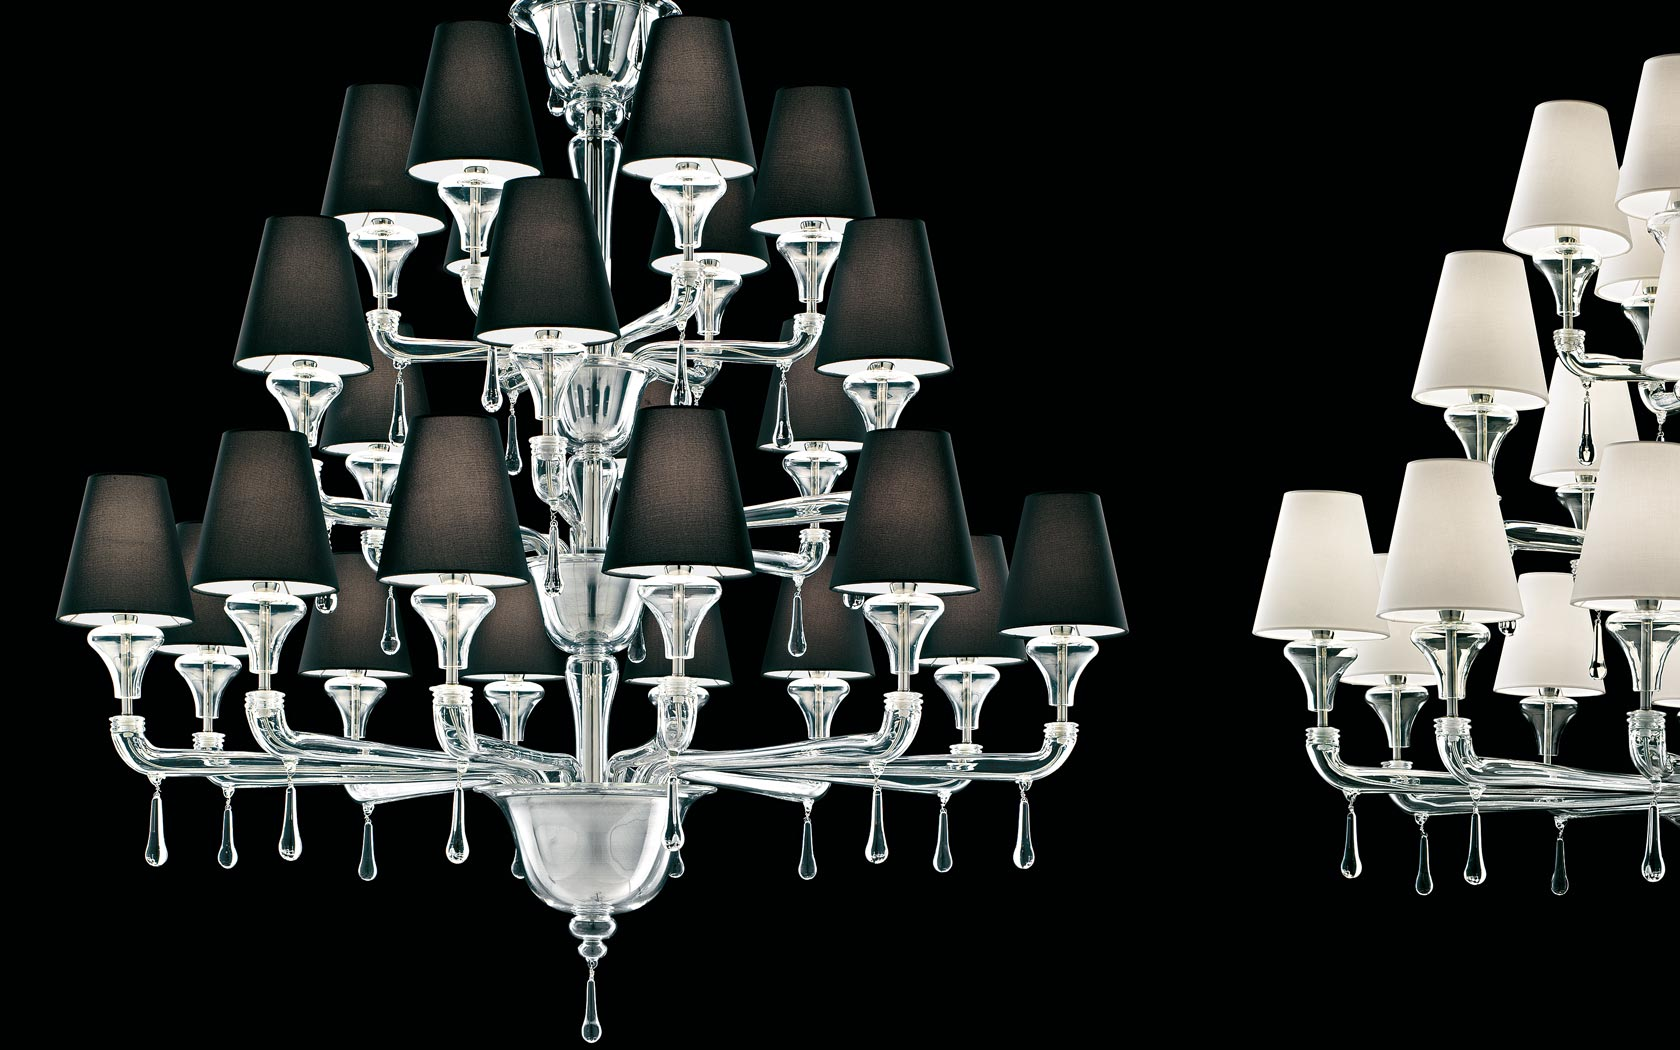 barovier chandeliers. Black Bedroom Furniture Sets. Home Design Ideas